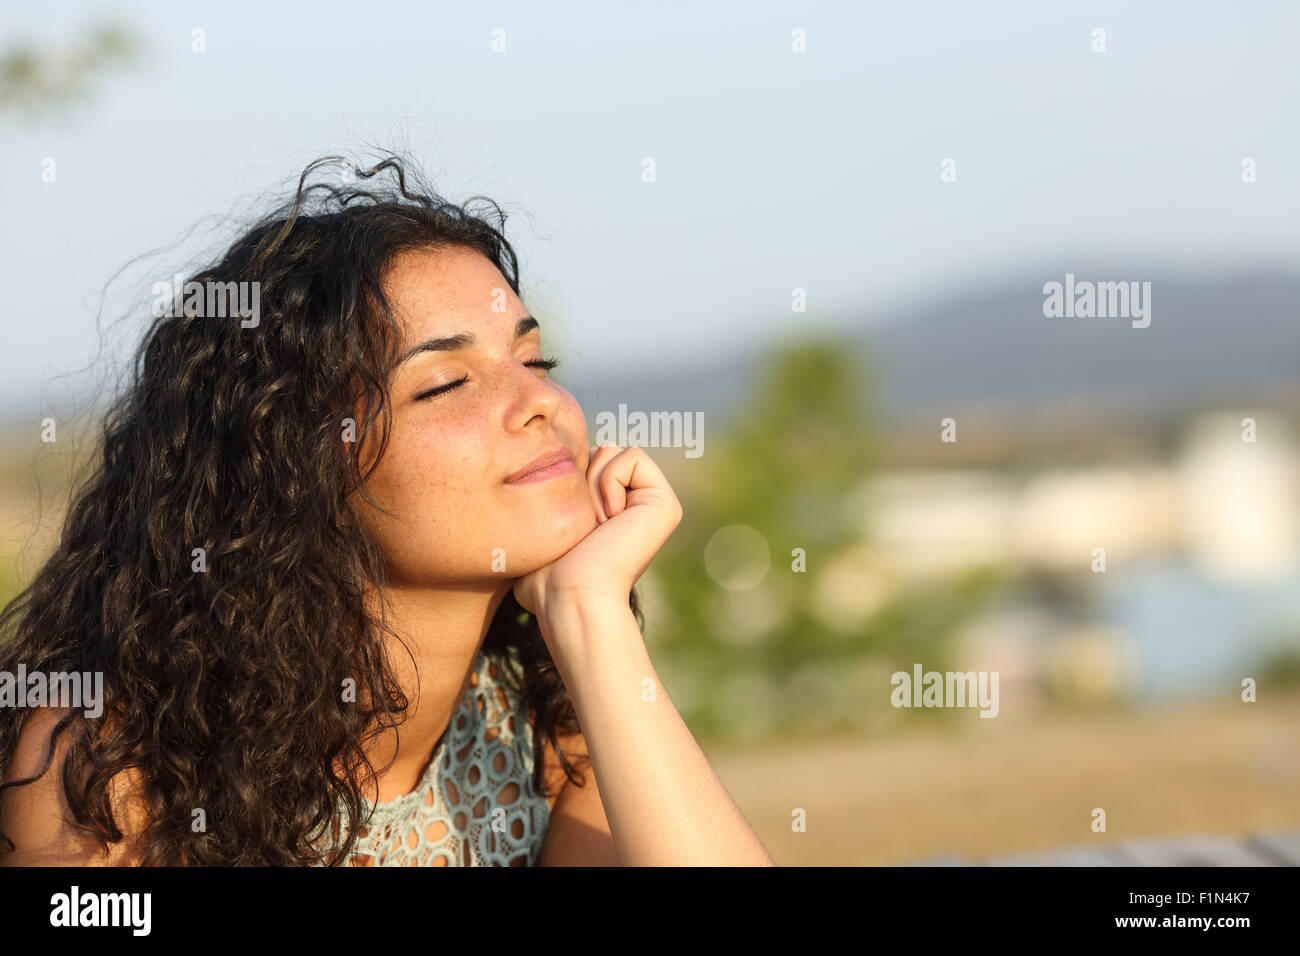 Woman relaxing and enjoying the sun in a warmth park at sunset - Stock Image